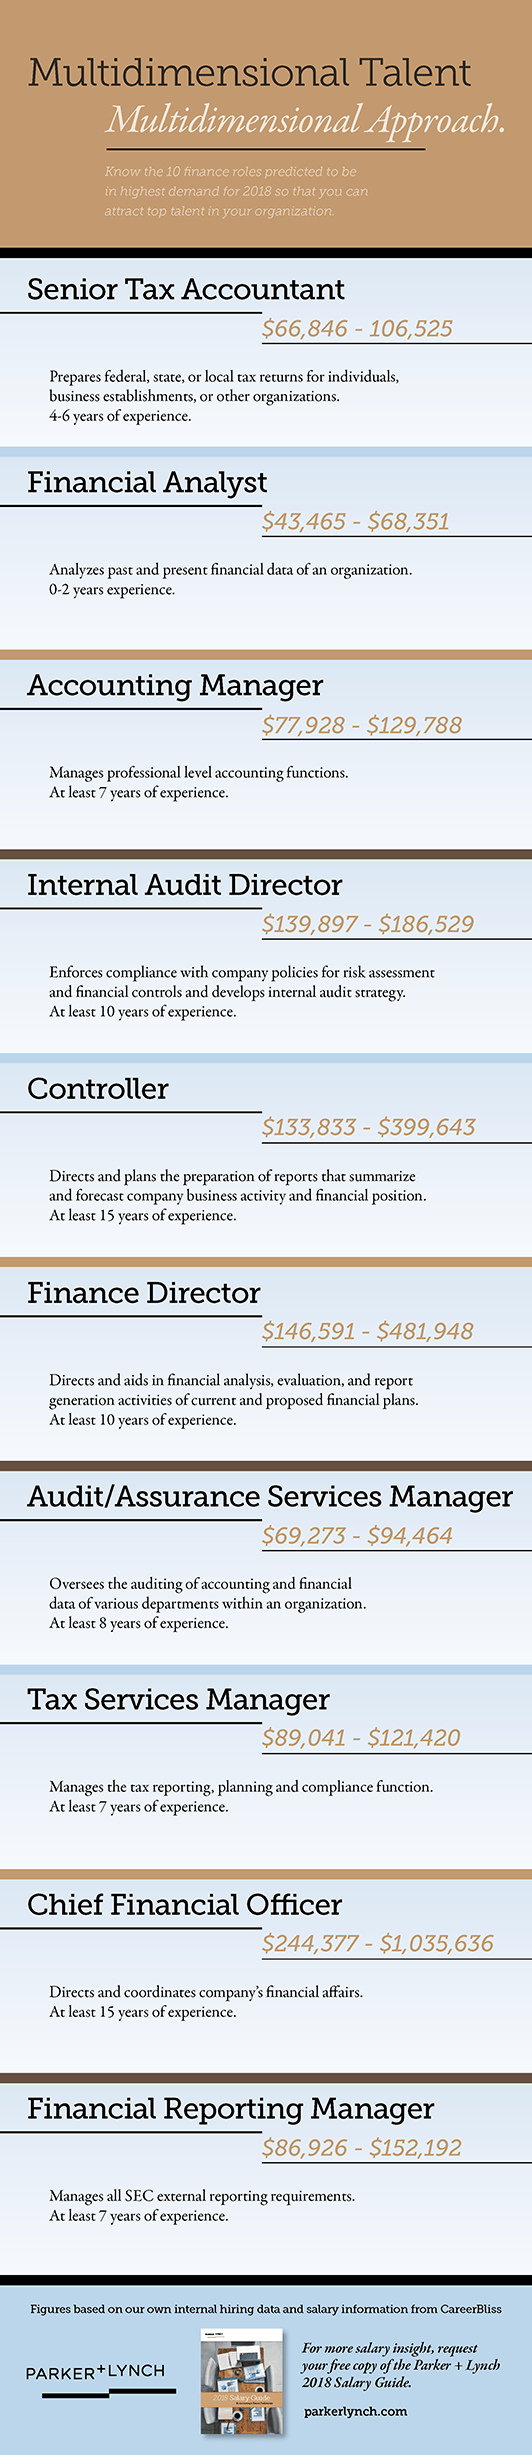 top high-level accounting and finance jobs